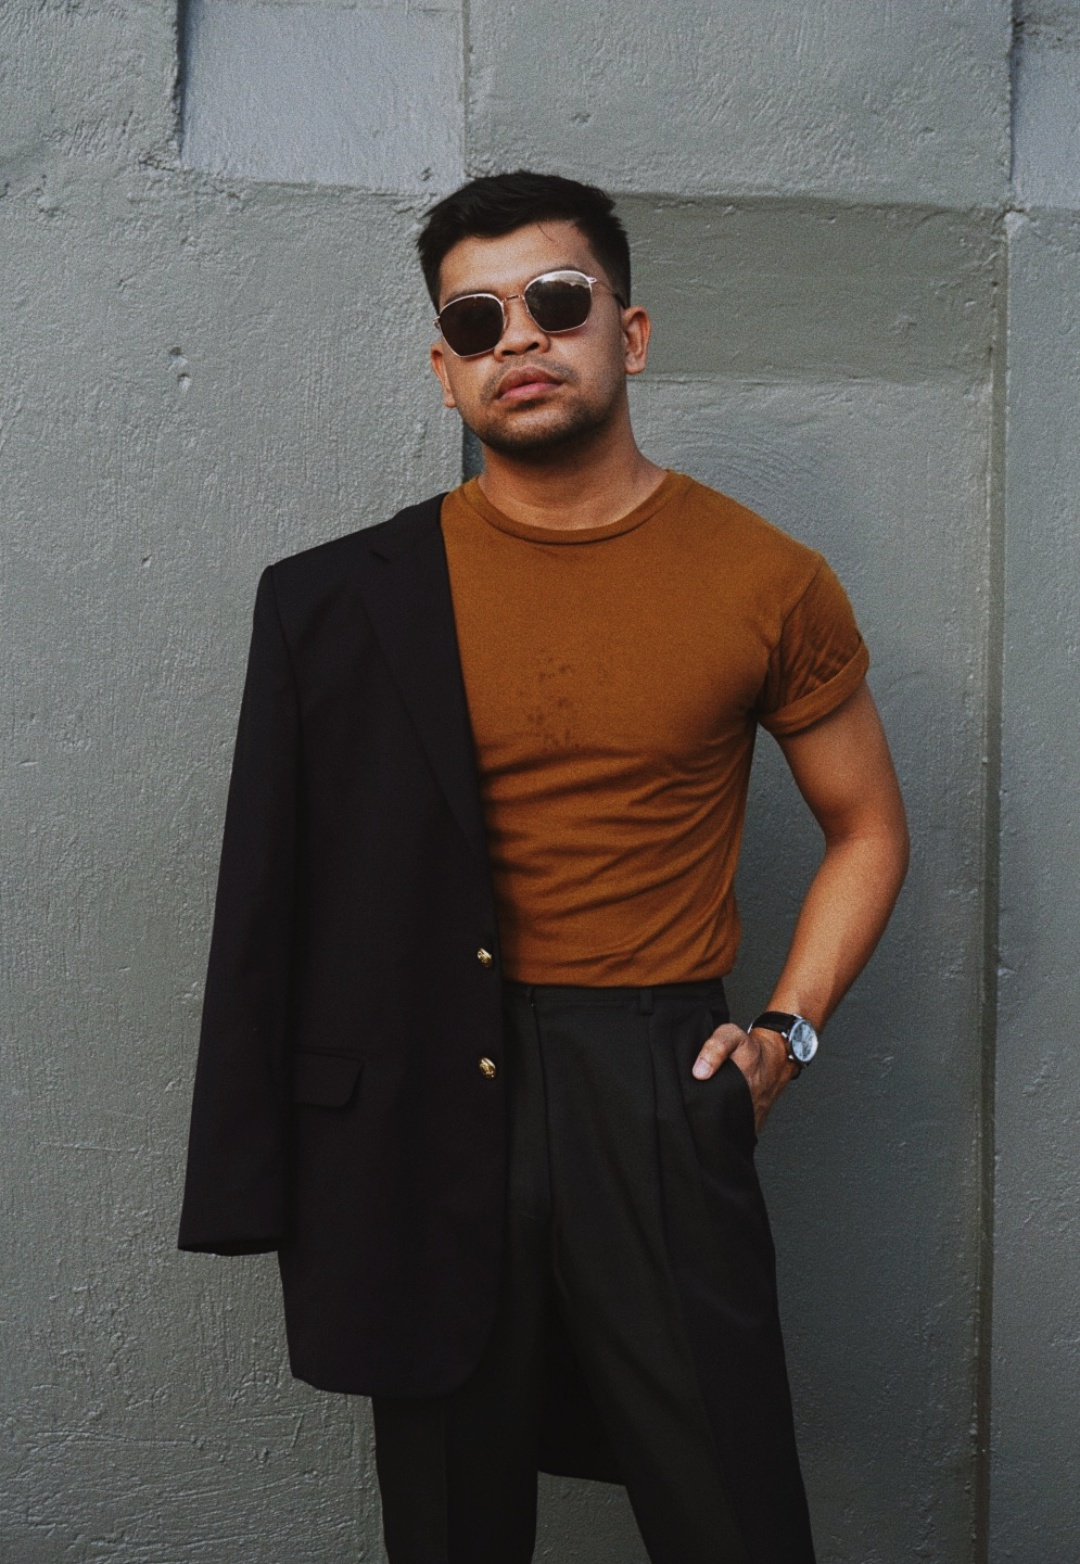 FASHION-BLOGGERS-ALMOSTABLOGGER-CEBU-MEN.jpg